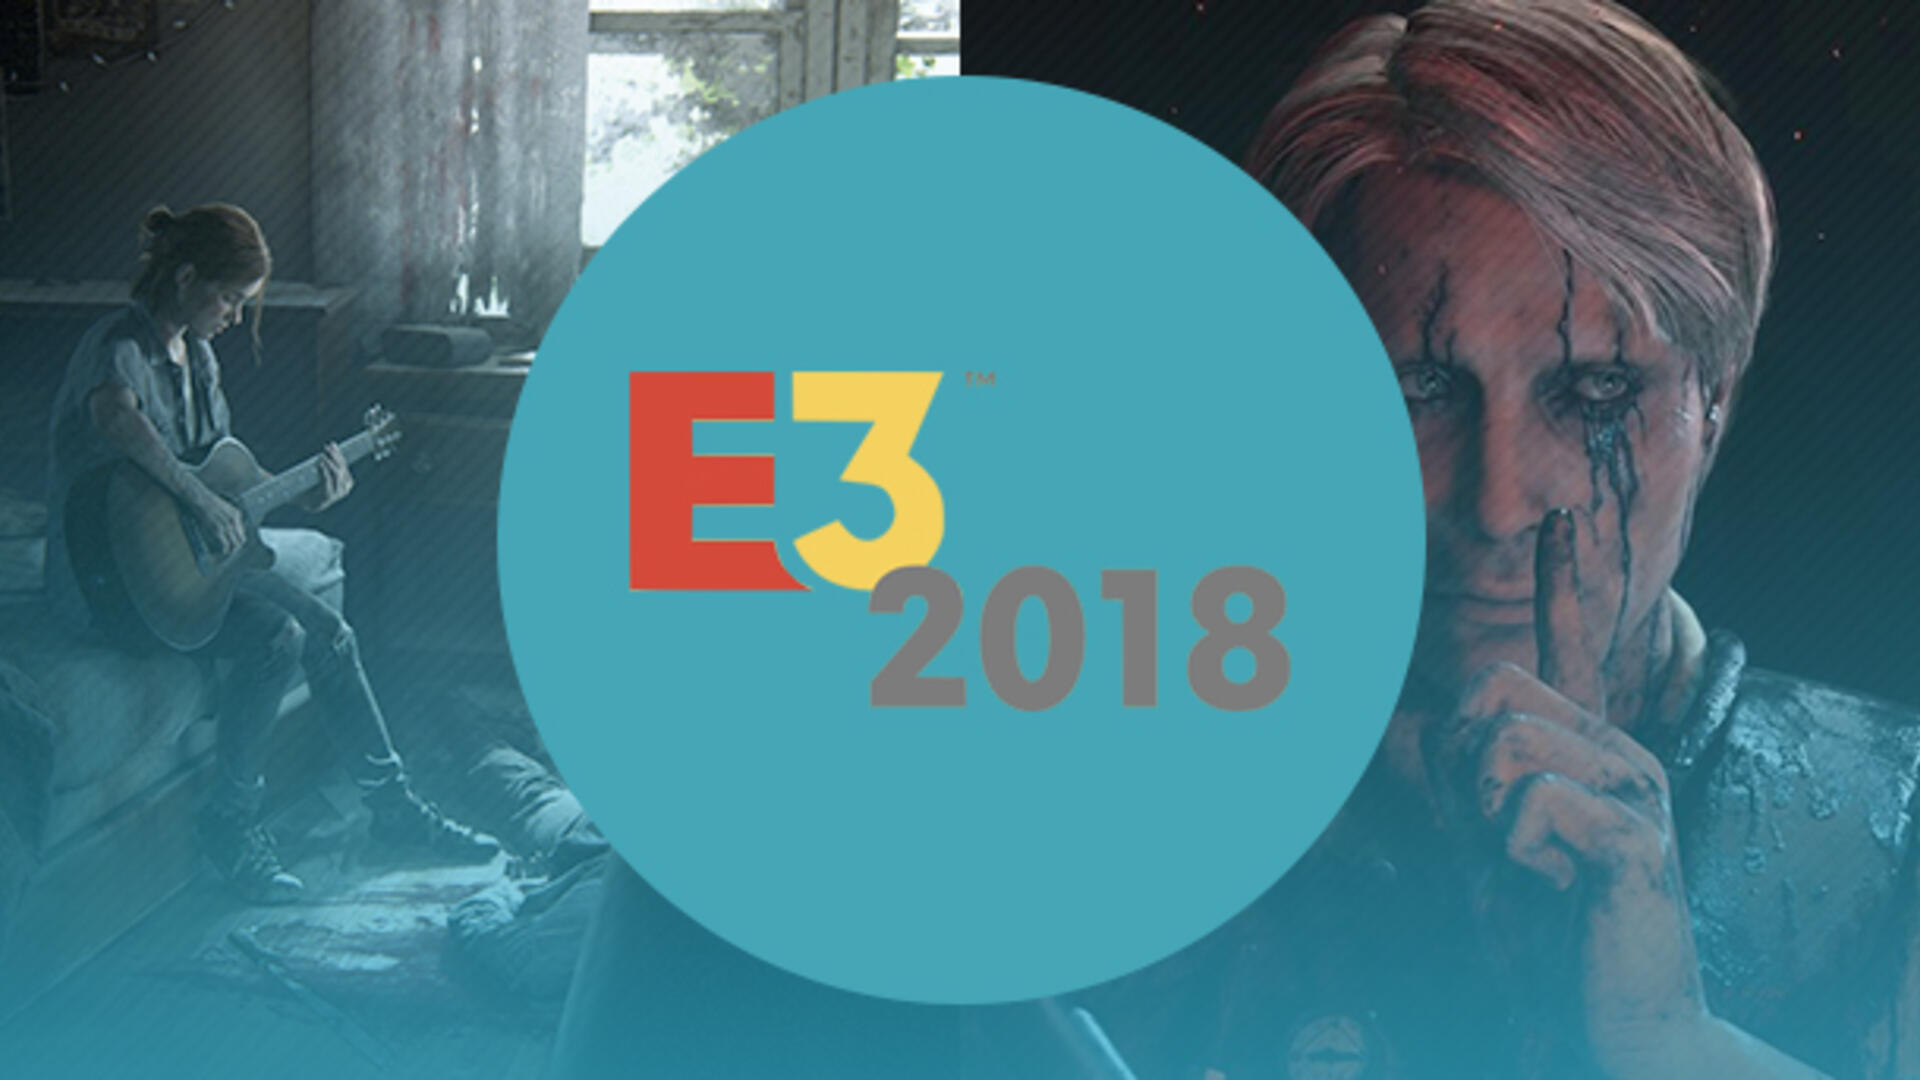 Bethesda E3 2018 Press Conference - All Games and Announcements